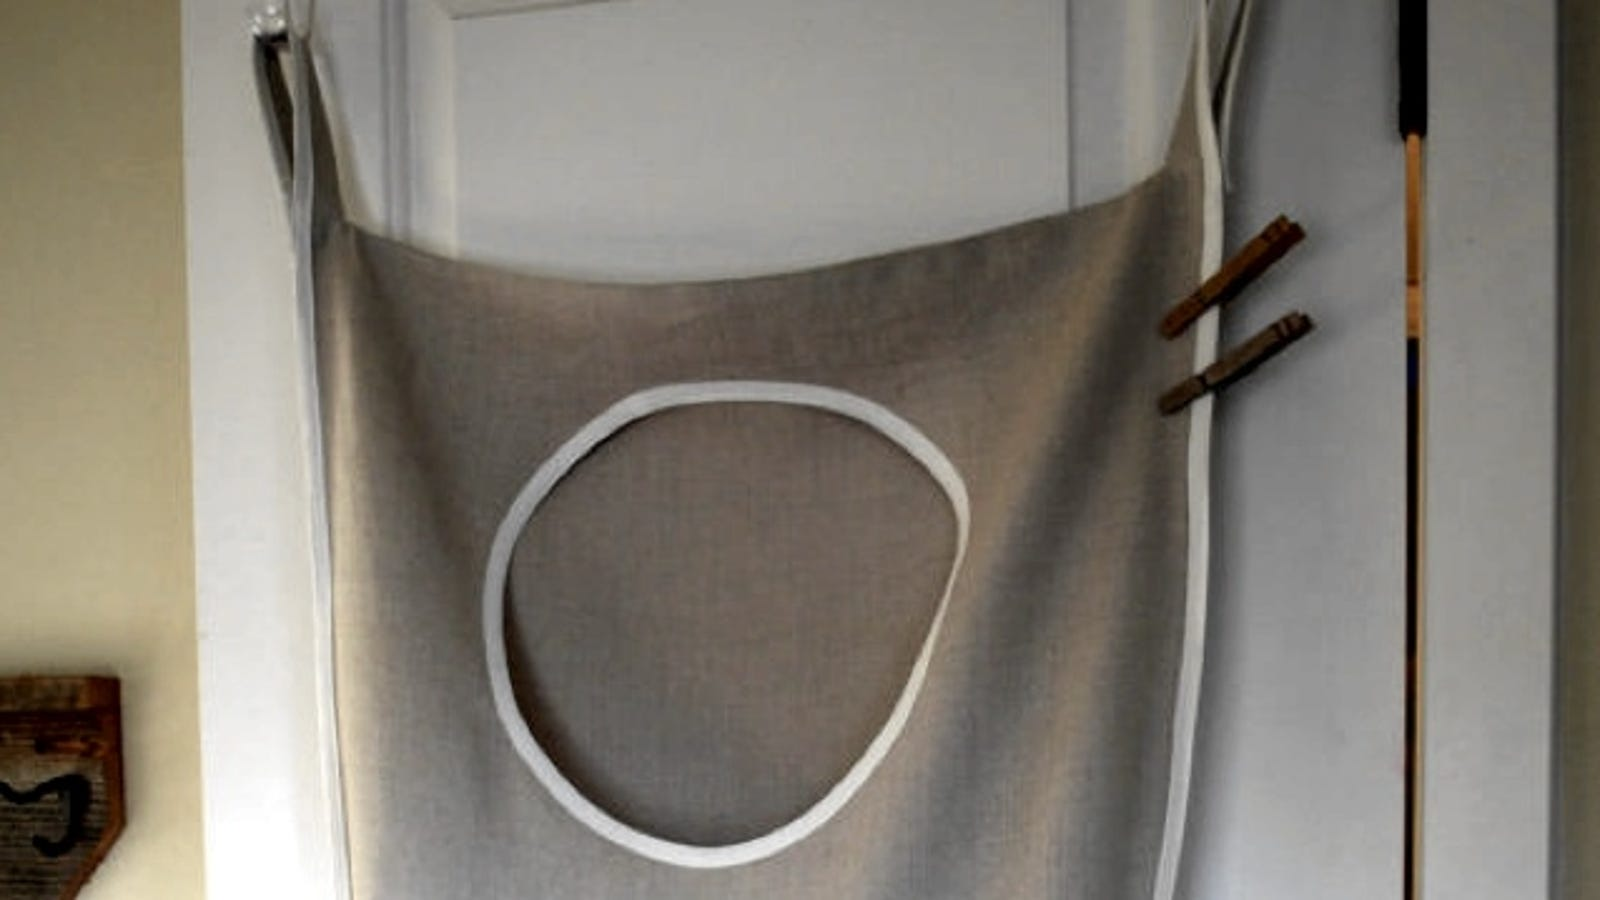 hang a laundry hamper on the back of your closet door to